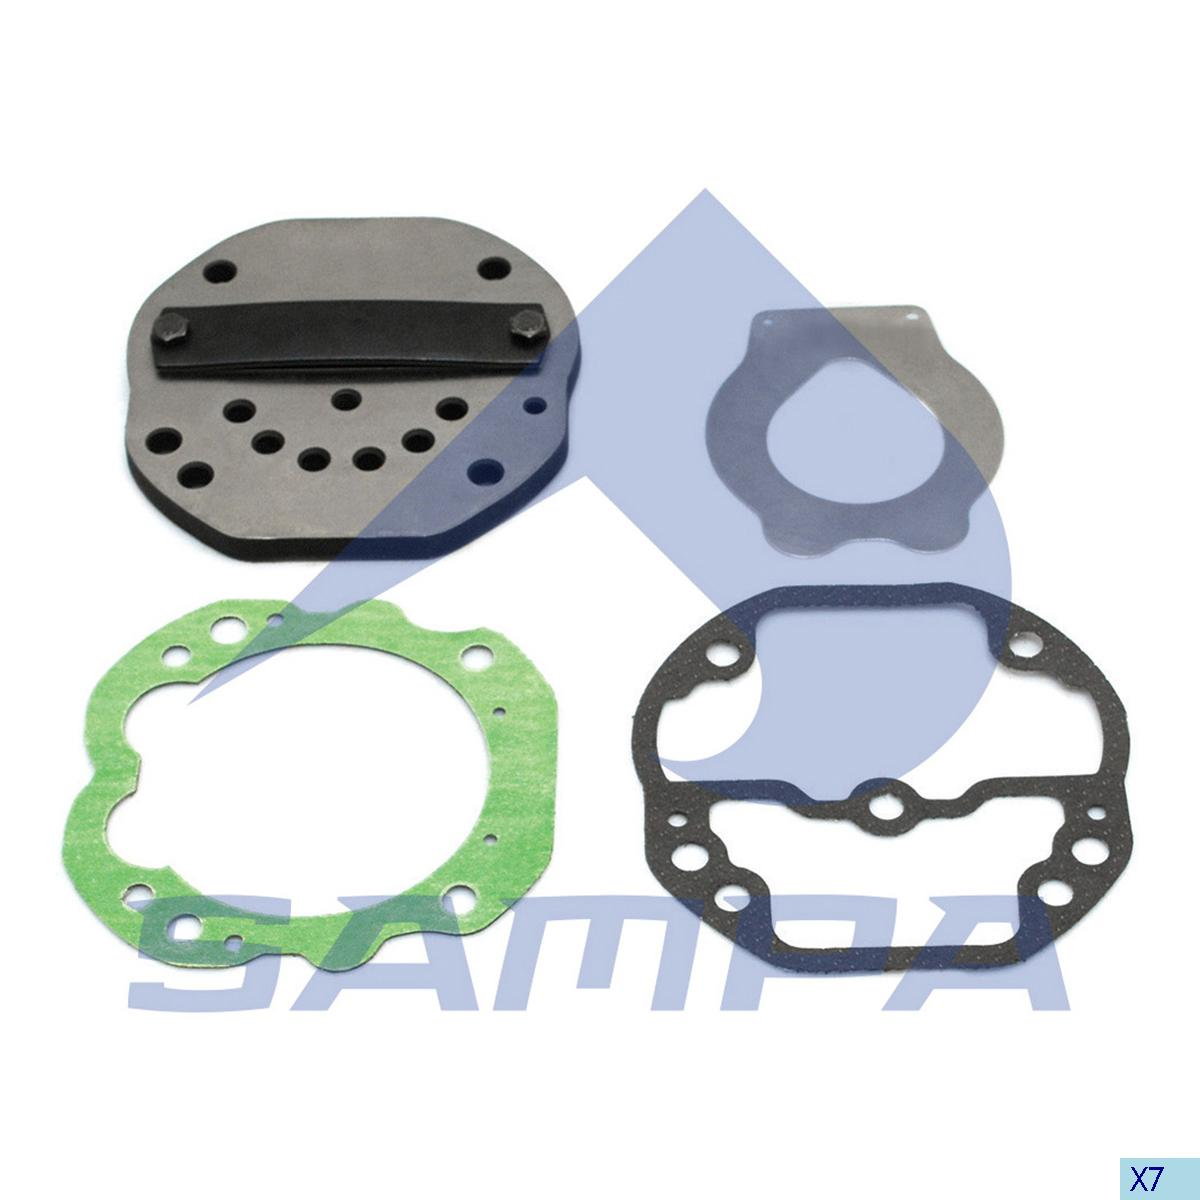 Disc, Cylinder Head, Man, Compressed Air System